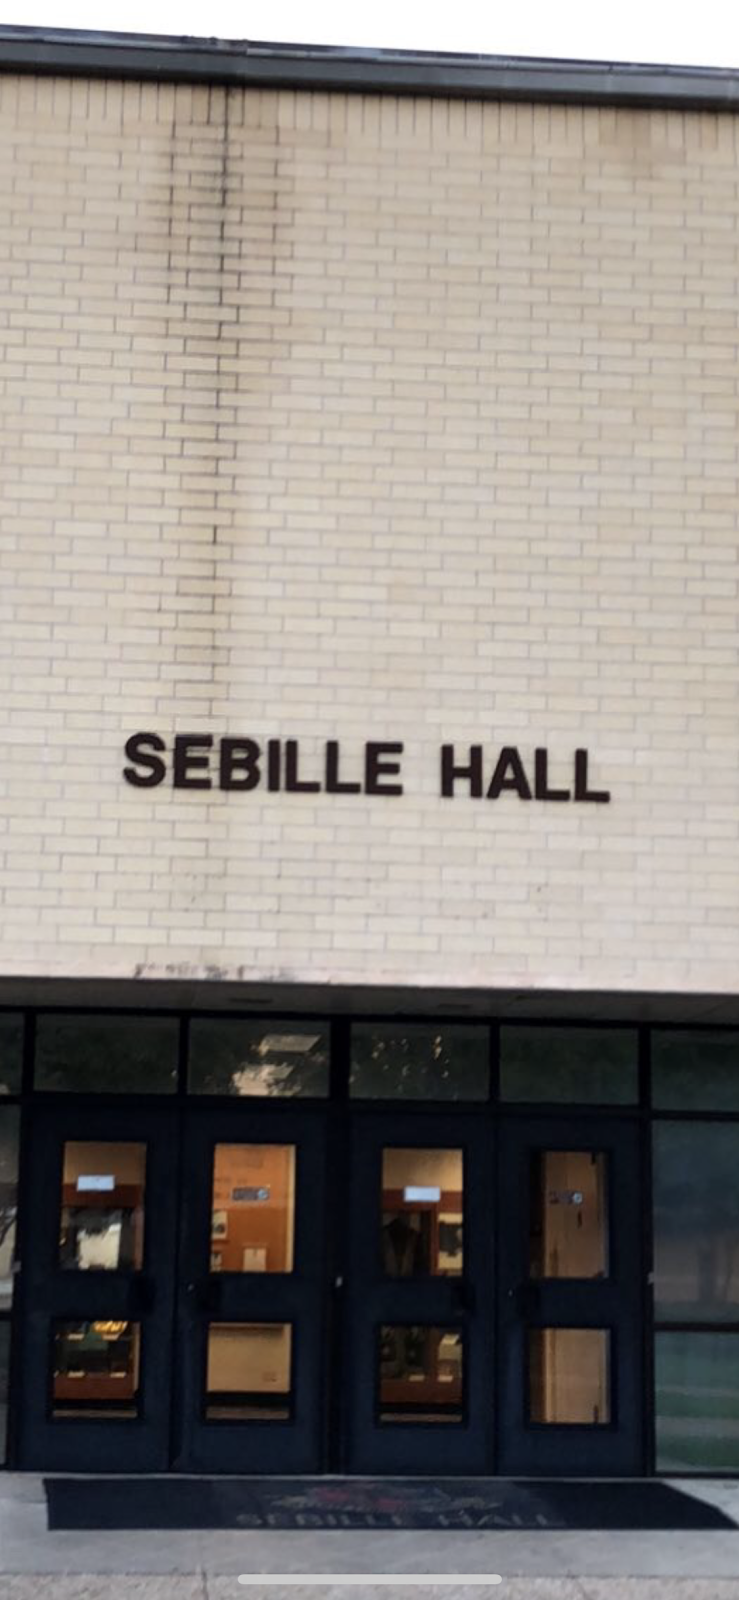 Sebille Hall - library  | Photo 2 of 2 | Address: Lackland AFB, San Antonio, TX 78236, USA